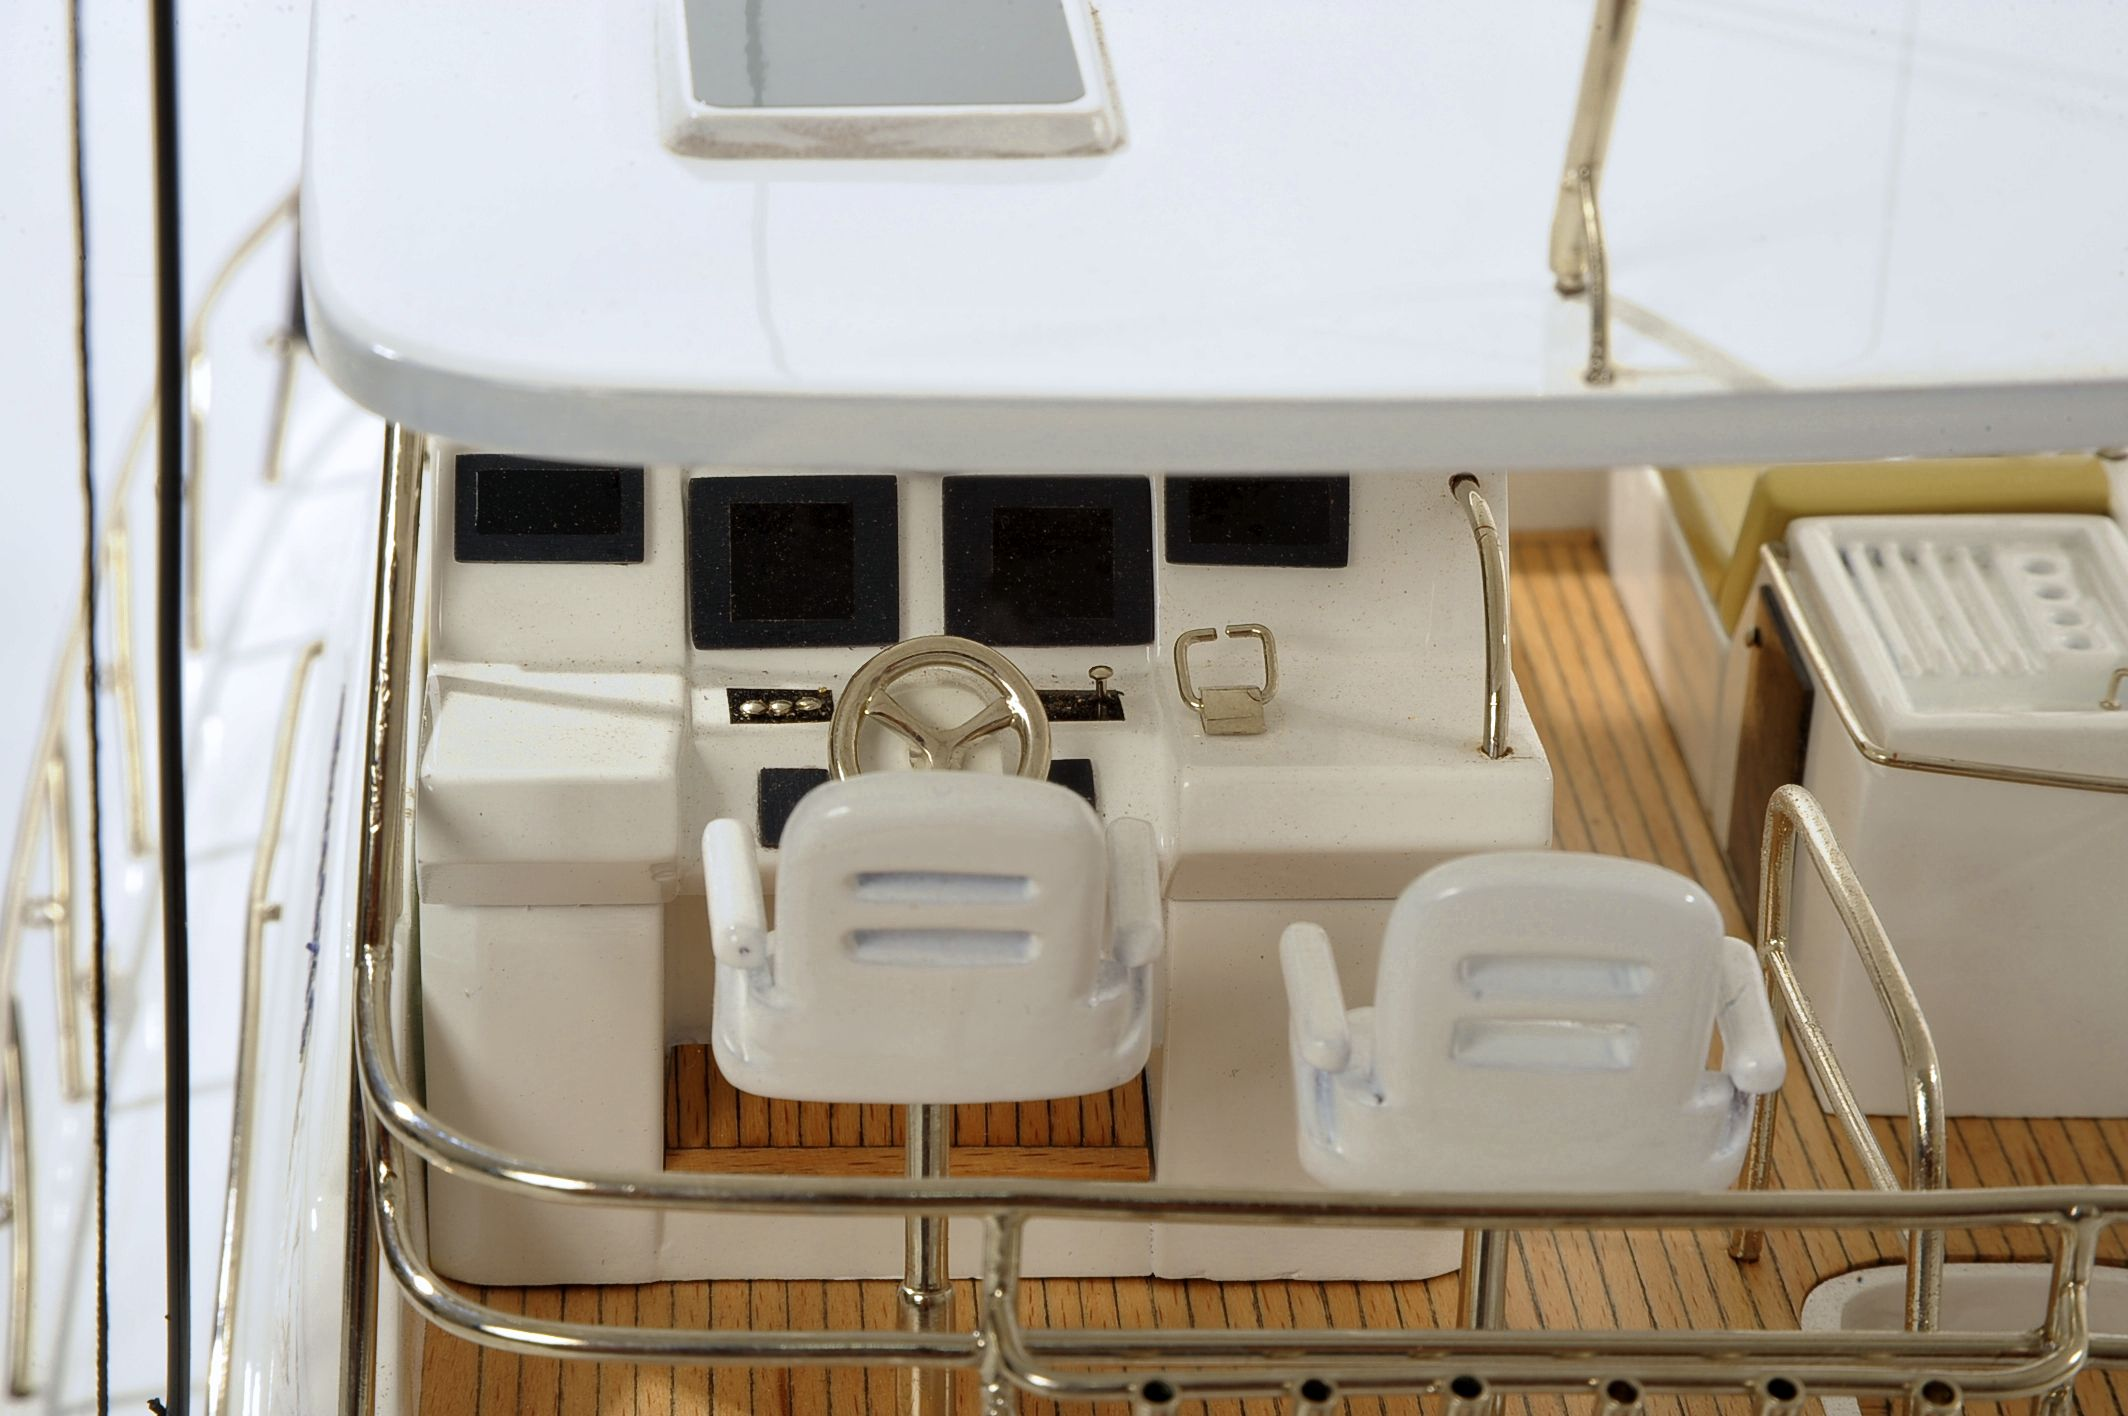 1517-8971-Rivera-45-Model-Boat-Time-Out-2